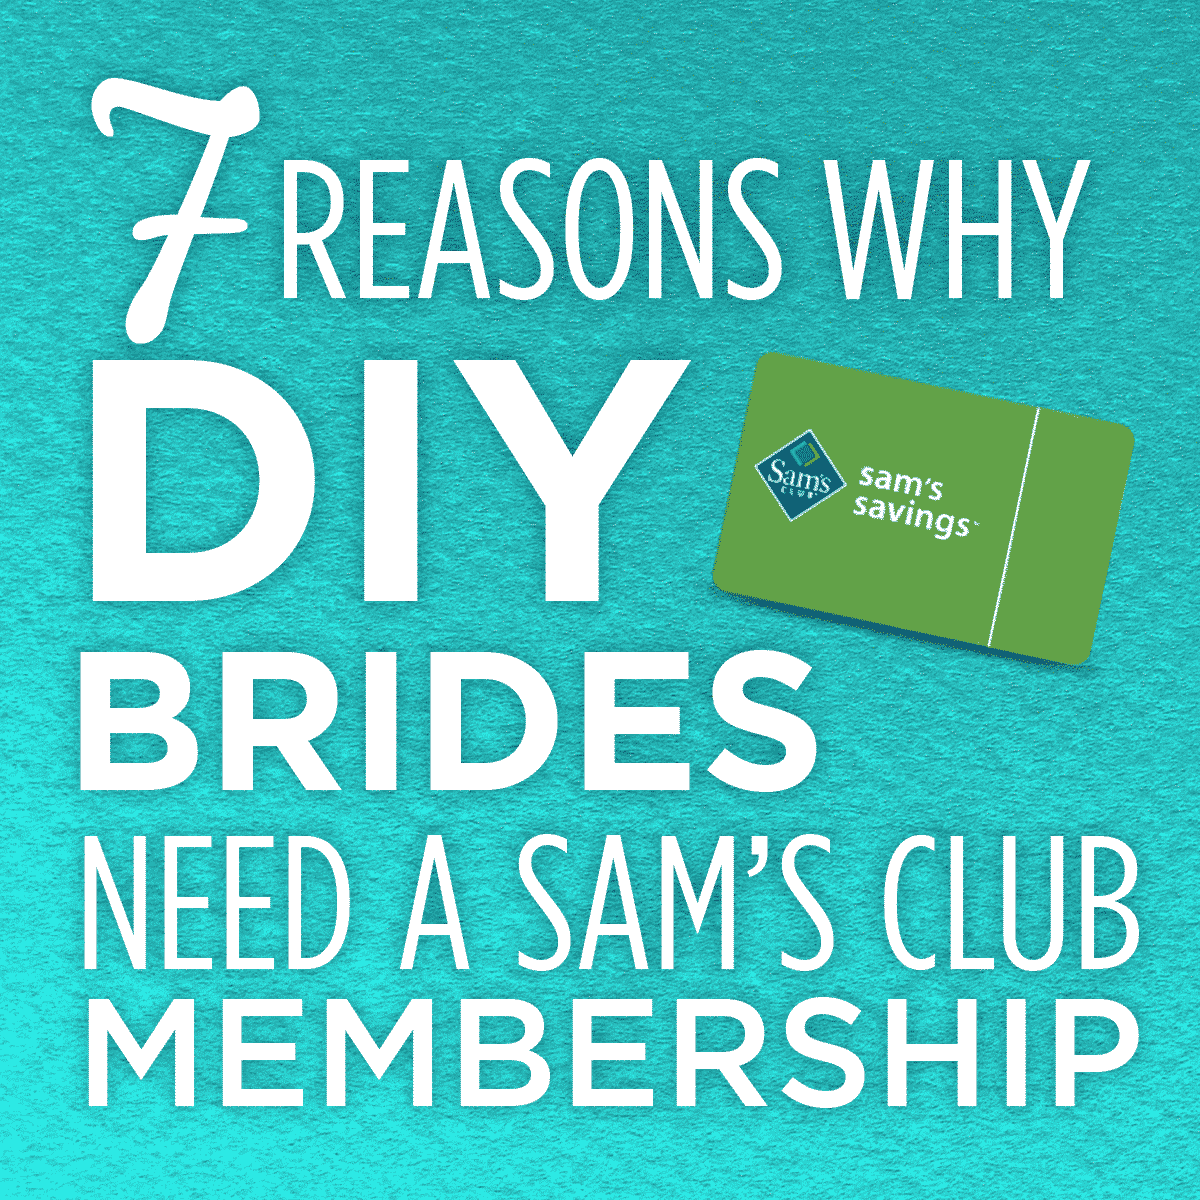 heck out all the reasons that DIY brides need a Sam's Club Membership -- see how much it can save you on everything you need for your big day!